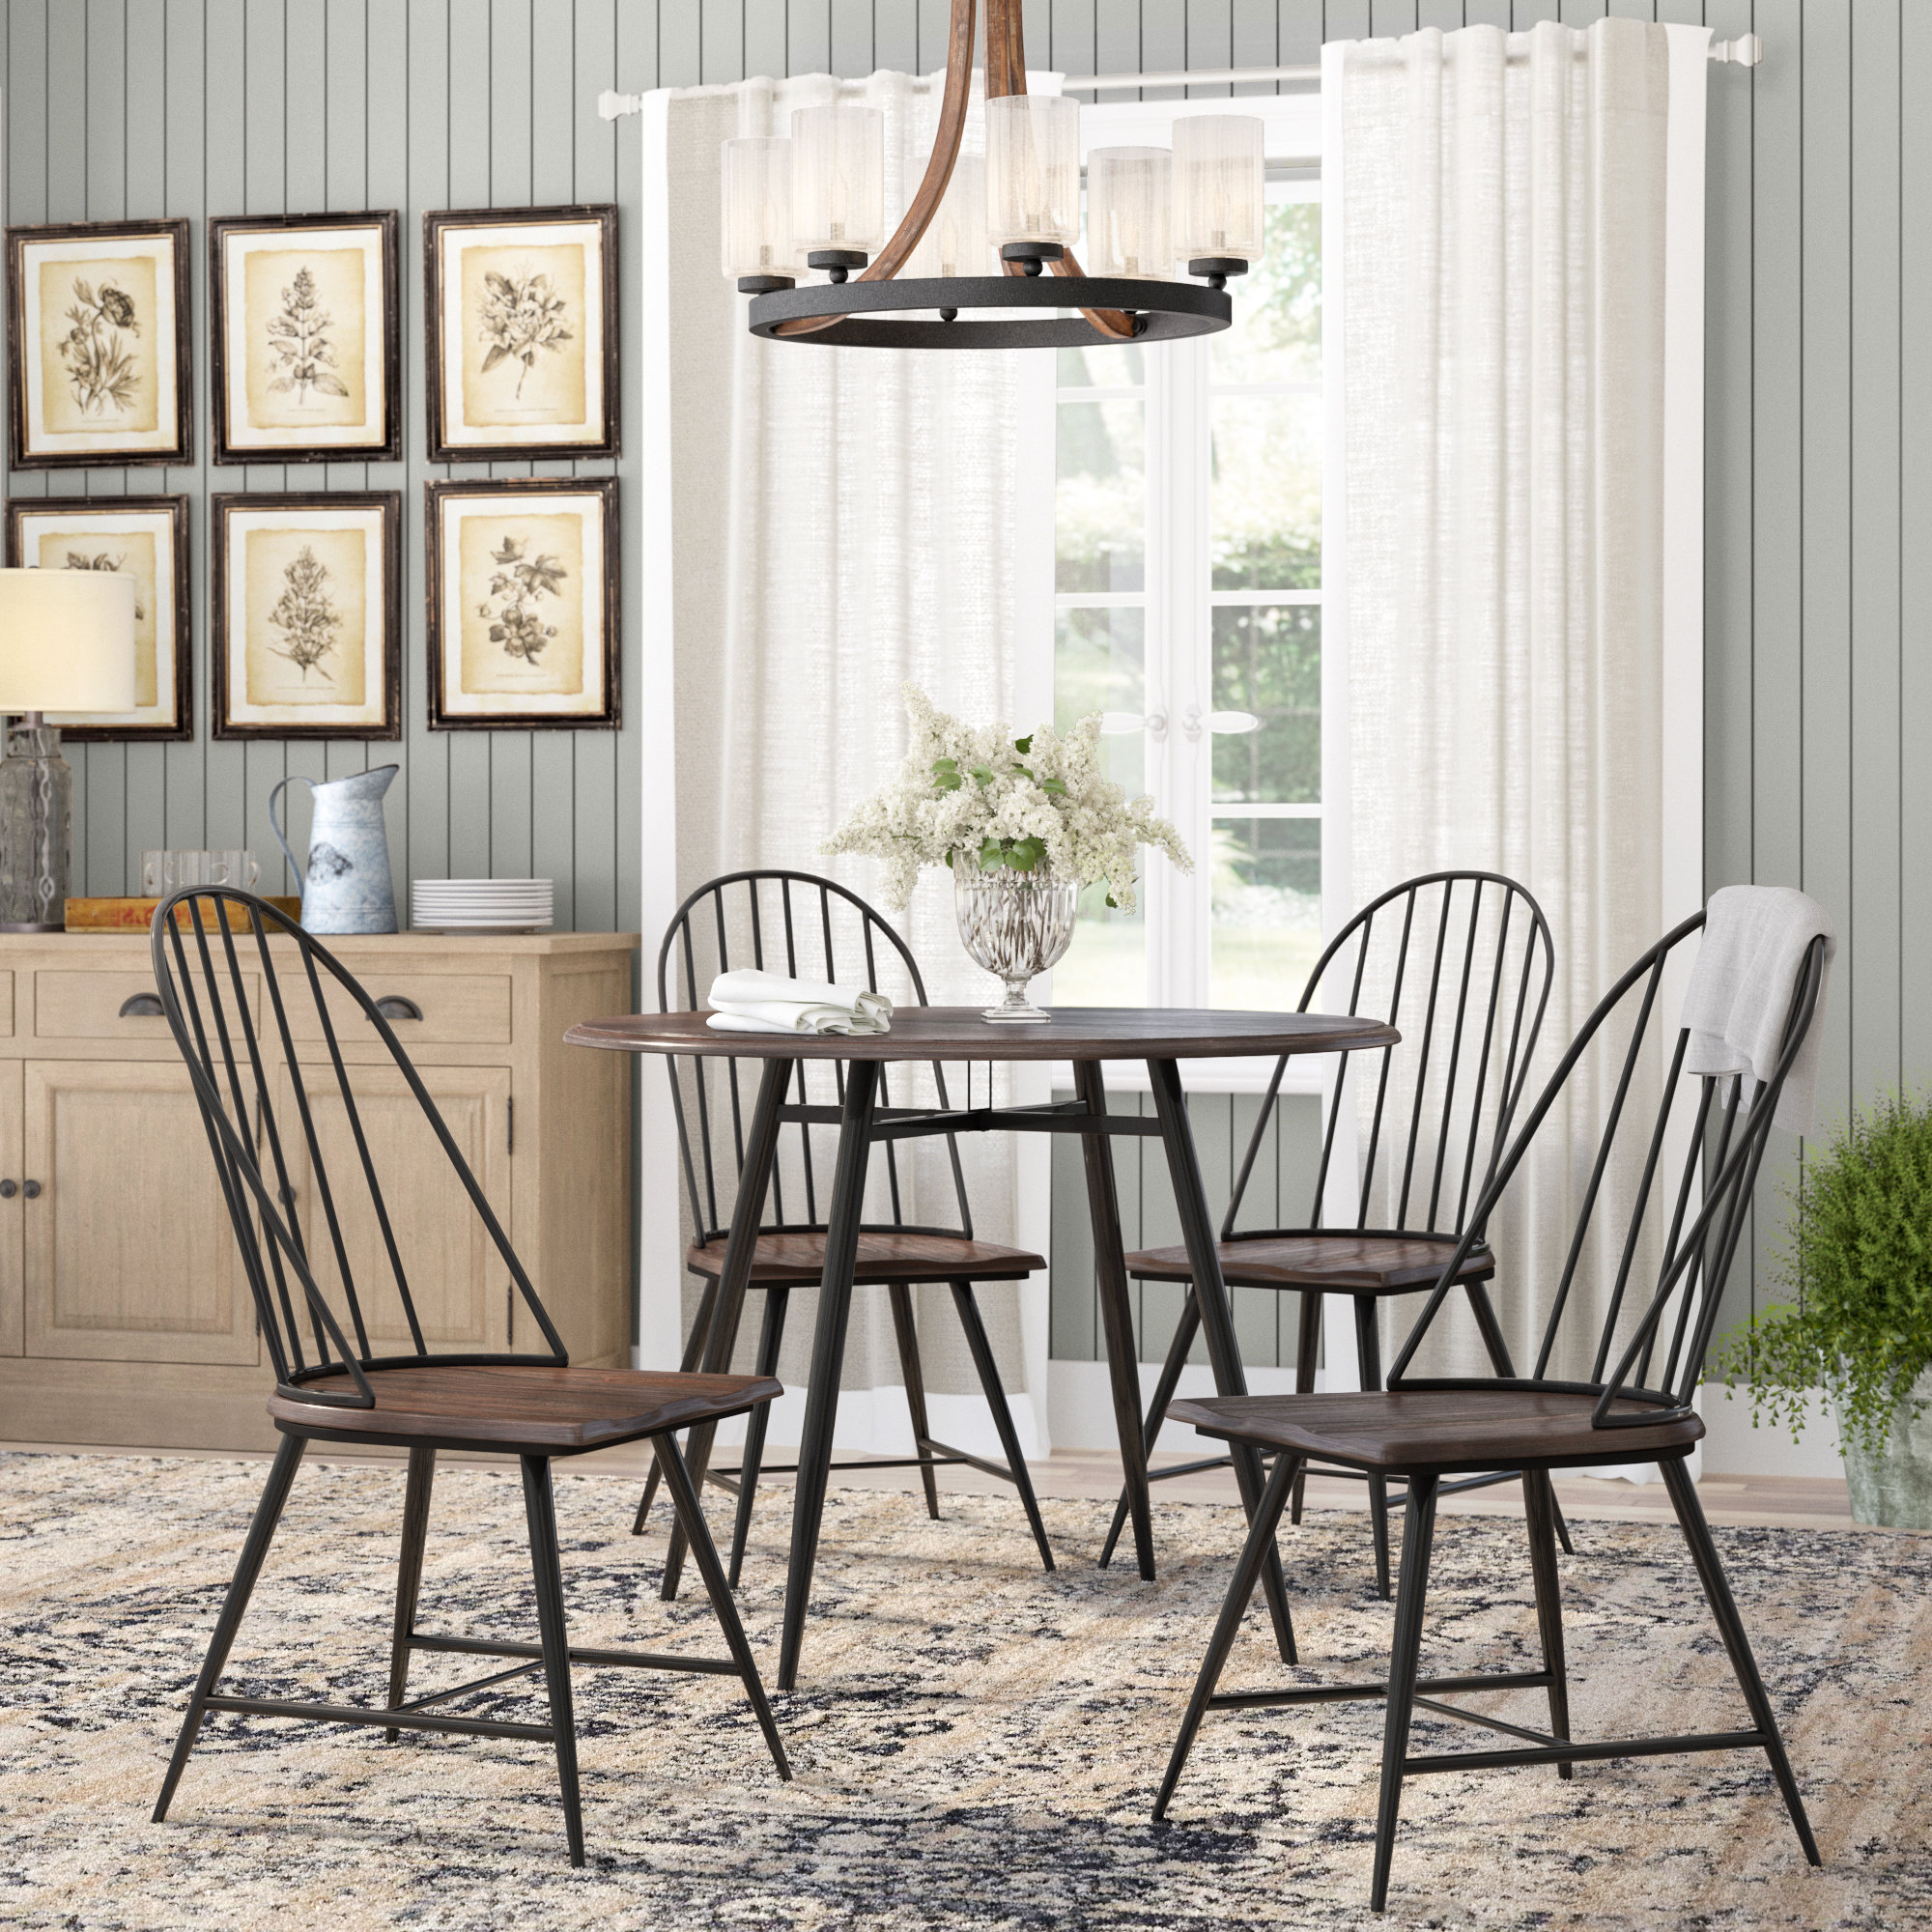 Preferred Laurel Foundry Modern Farmhouse Hughley 5 Piece Dining Set & Reviews Throughout Middleport 5 Piece Dining Sets (View 15 of 25)